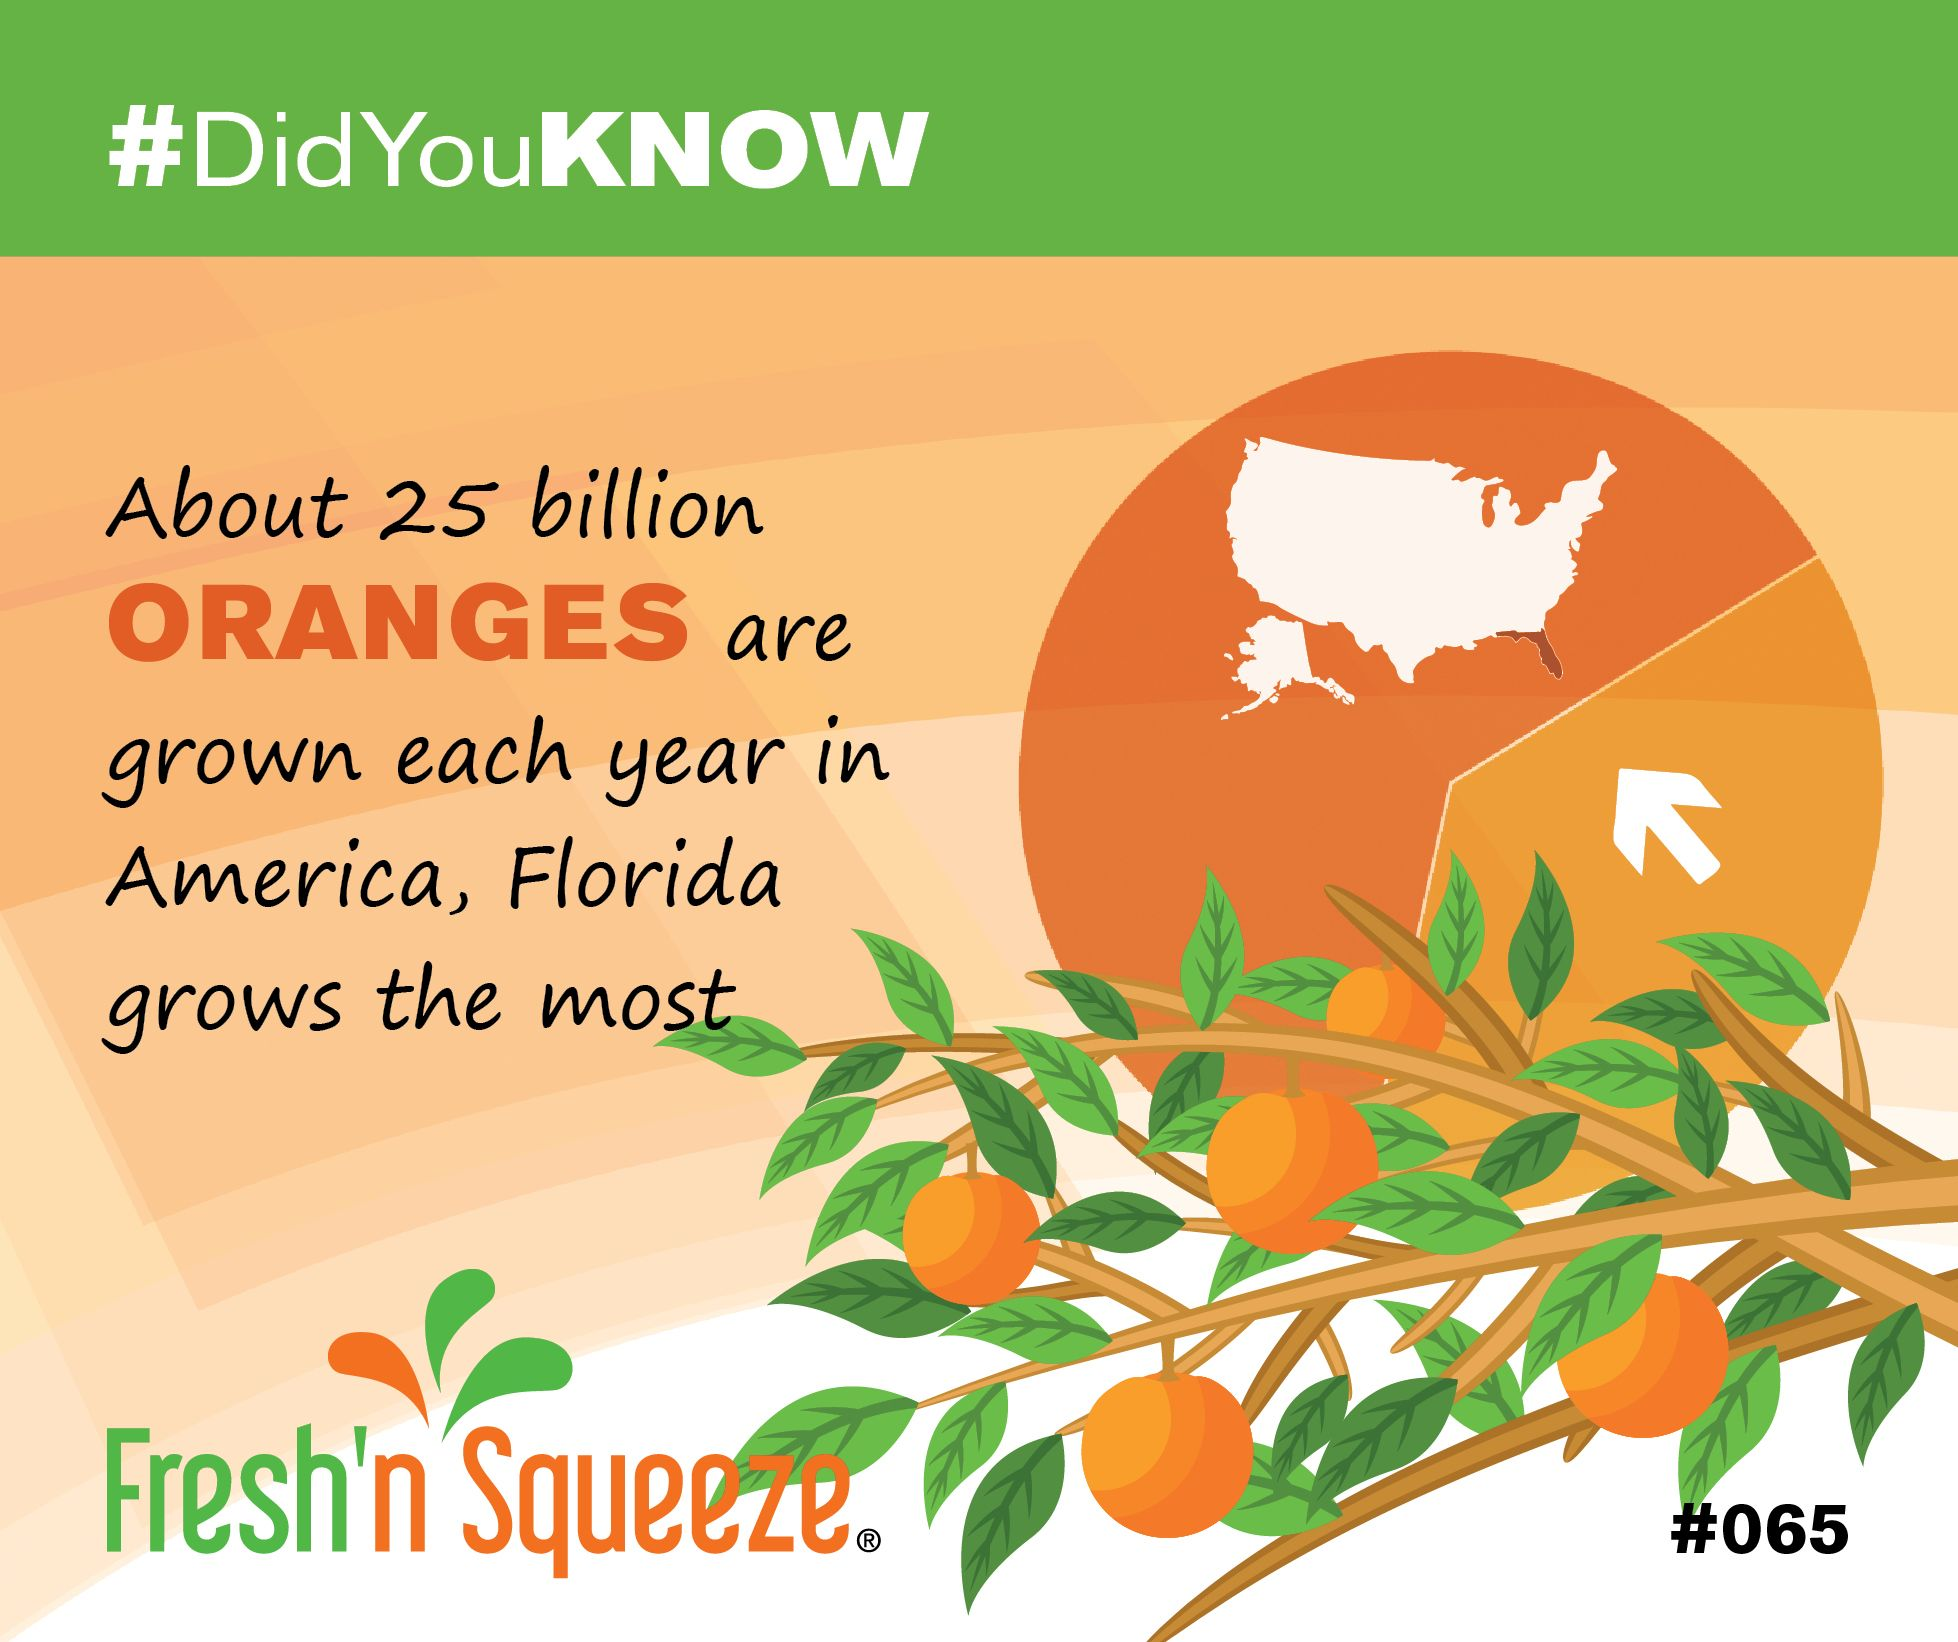 DidYouKnow 🍊 About 25 billion oranges are grown each year